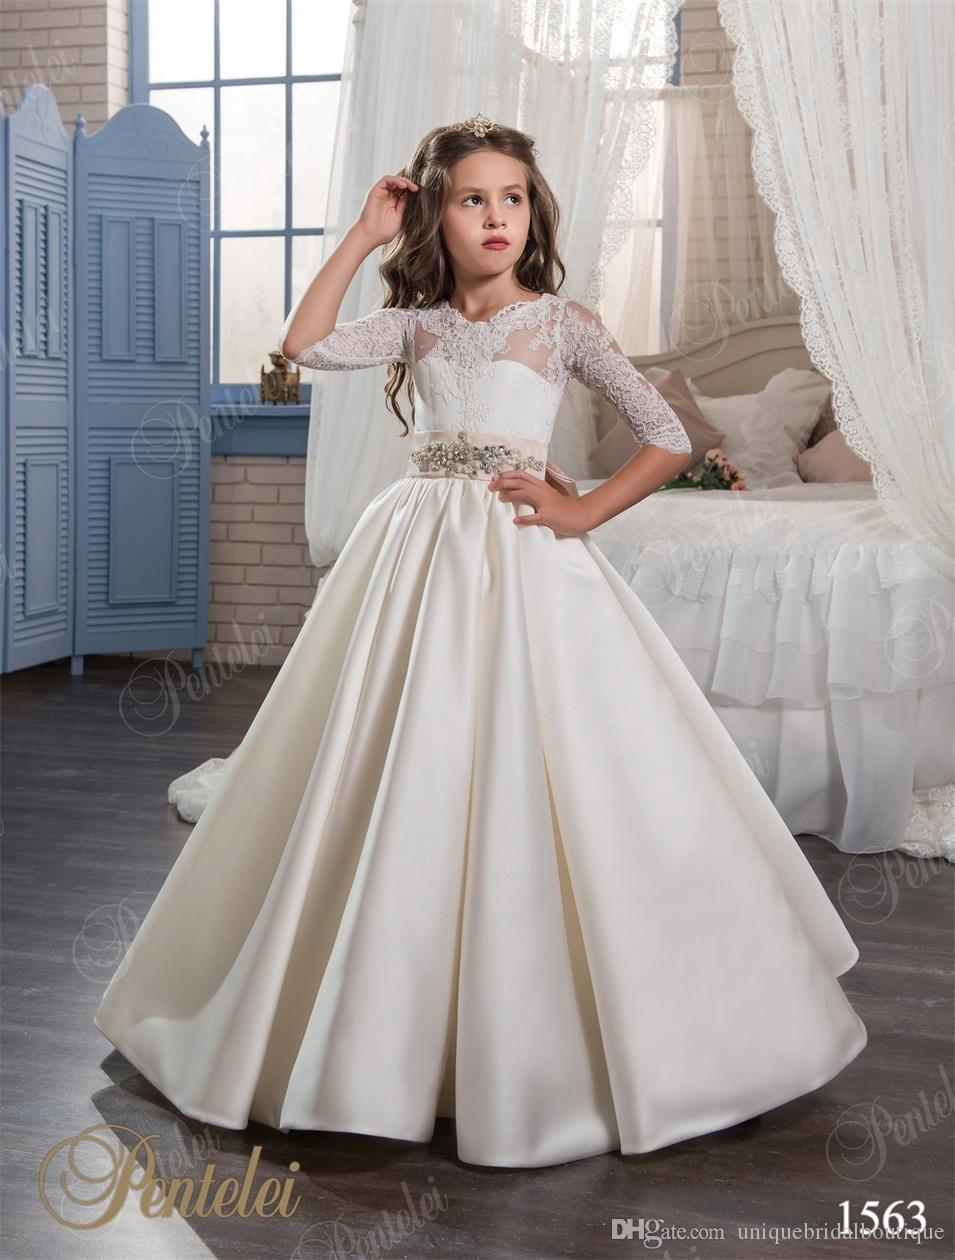 2017 vintage girls bridesmaid dresses with 34 long sleeves and 2017 vintage girls bridesmaid dresses with 34 long sleeves and lace up back soft satin a line flower girls gowns for toddlers bonnie jean dresses ombrellifo Images